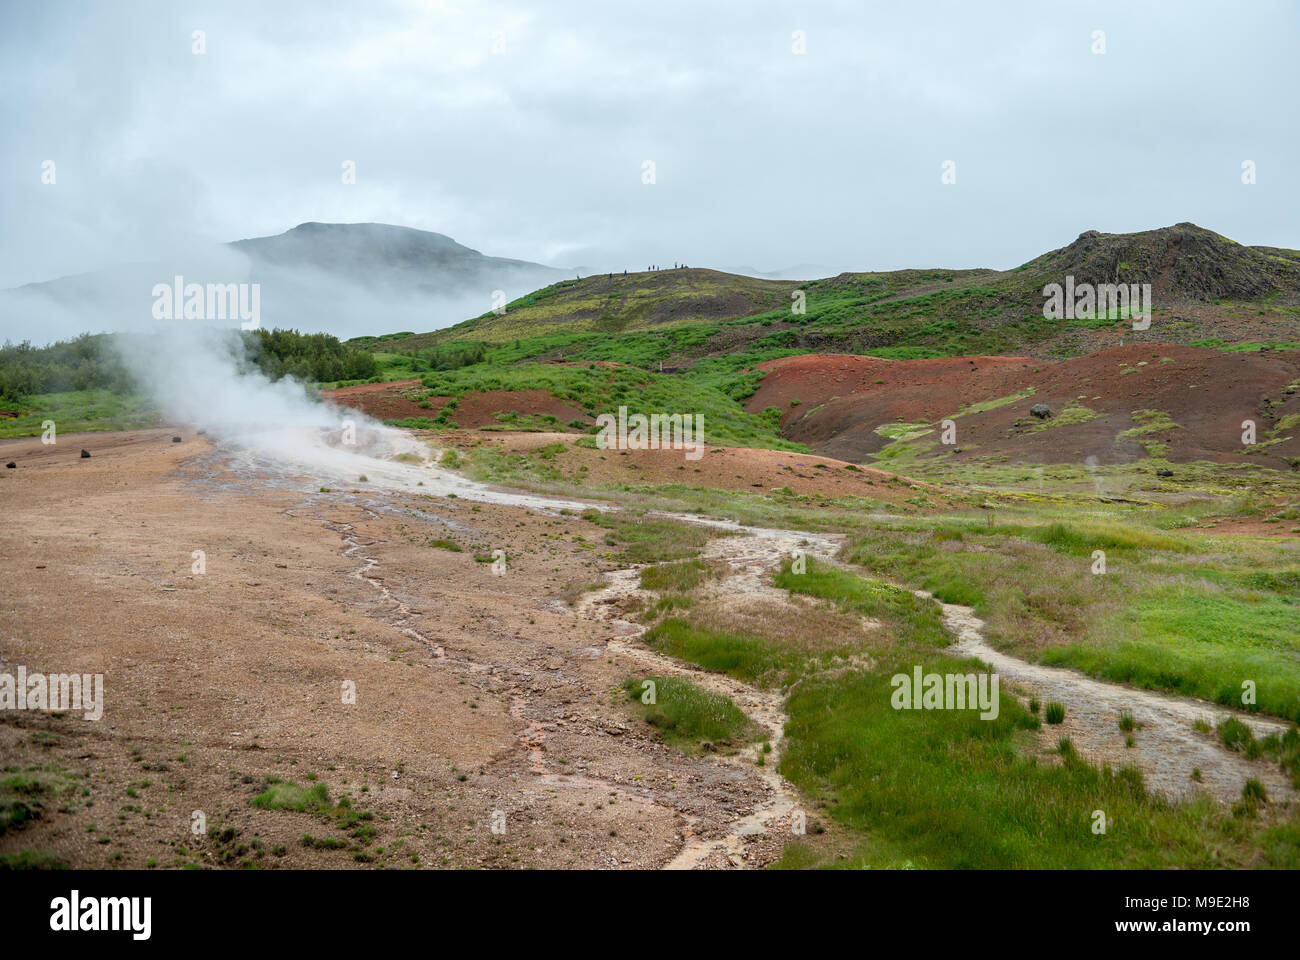 View of a Meadow with Steaming Hot Springs, Haukadalur Valley, Southern Iceland Stock Photo